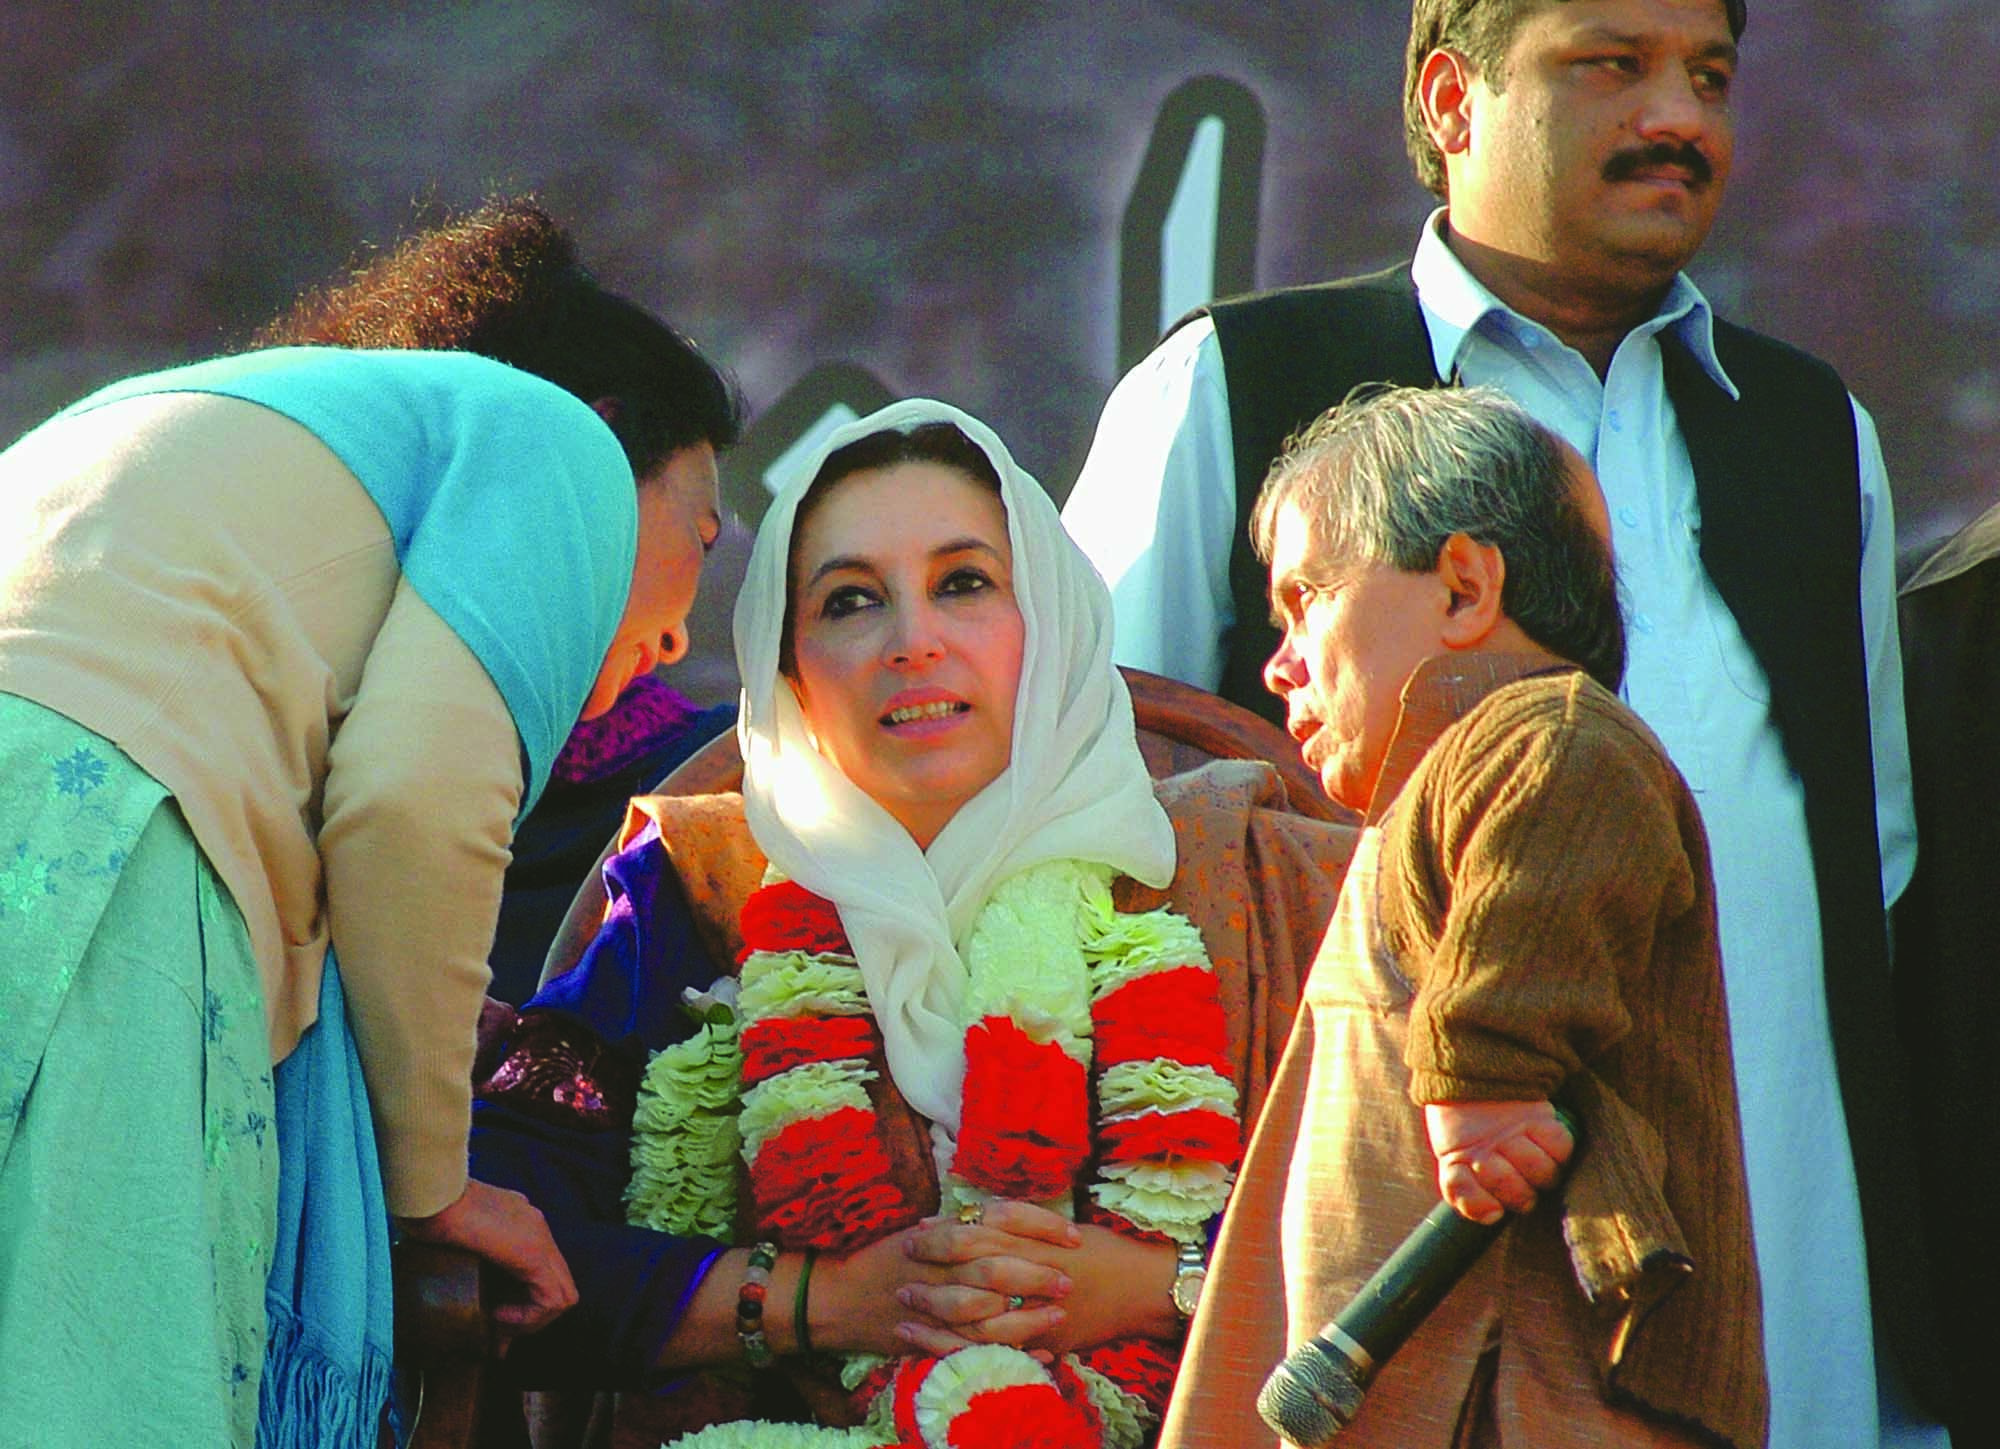 BENAZIR Bhutto receiving some last-minute brief from her close aide Naheed Khan as local party leader Sultan Qazi looked on. It was moments before Benazir Bhutto addressed a rally at the Liaquat Bagh in Rawalpindi on that fateful day of December 27, 2007, at the end of which she was no more and her husband Asif Ali Zardari became the new uniting force behind the Pakistan People's Party (PPP).